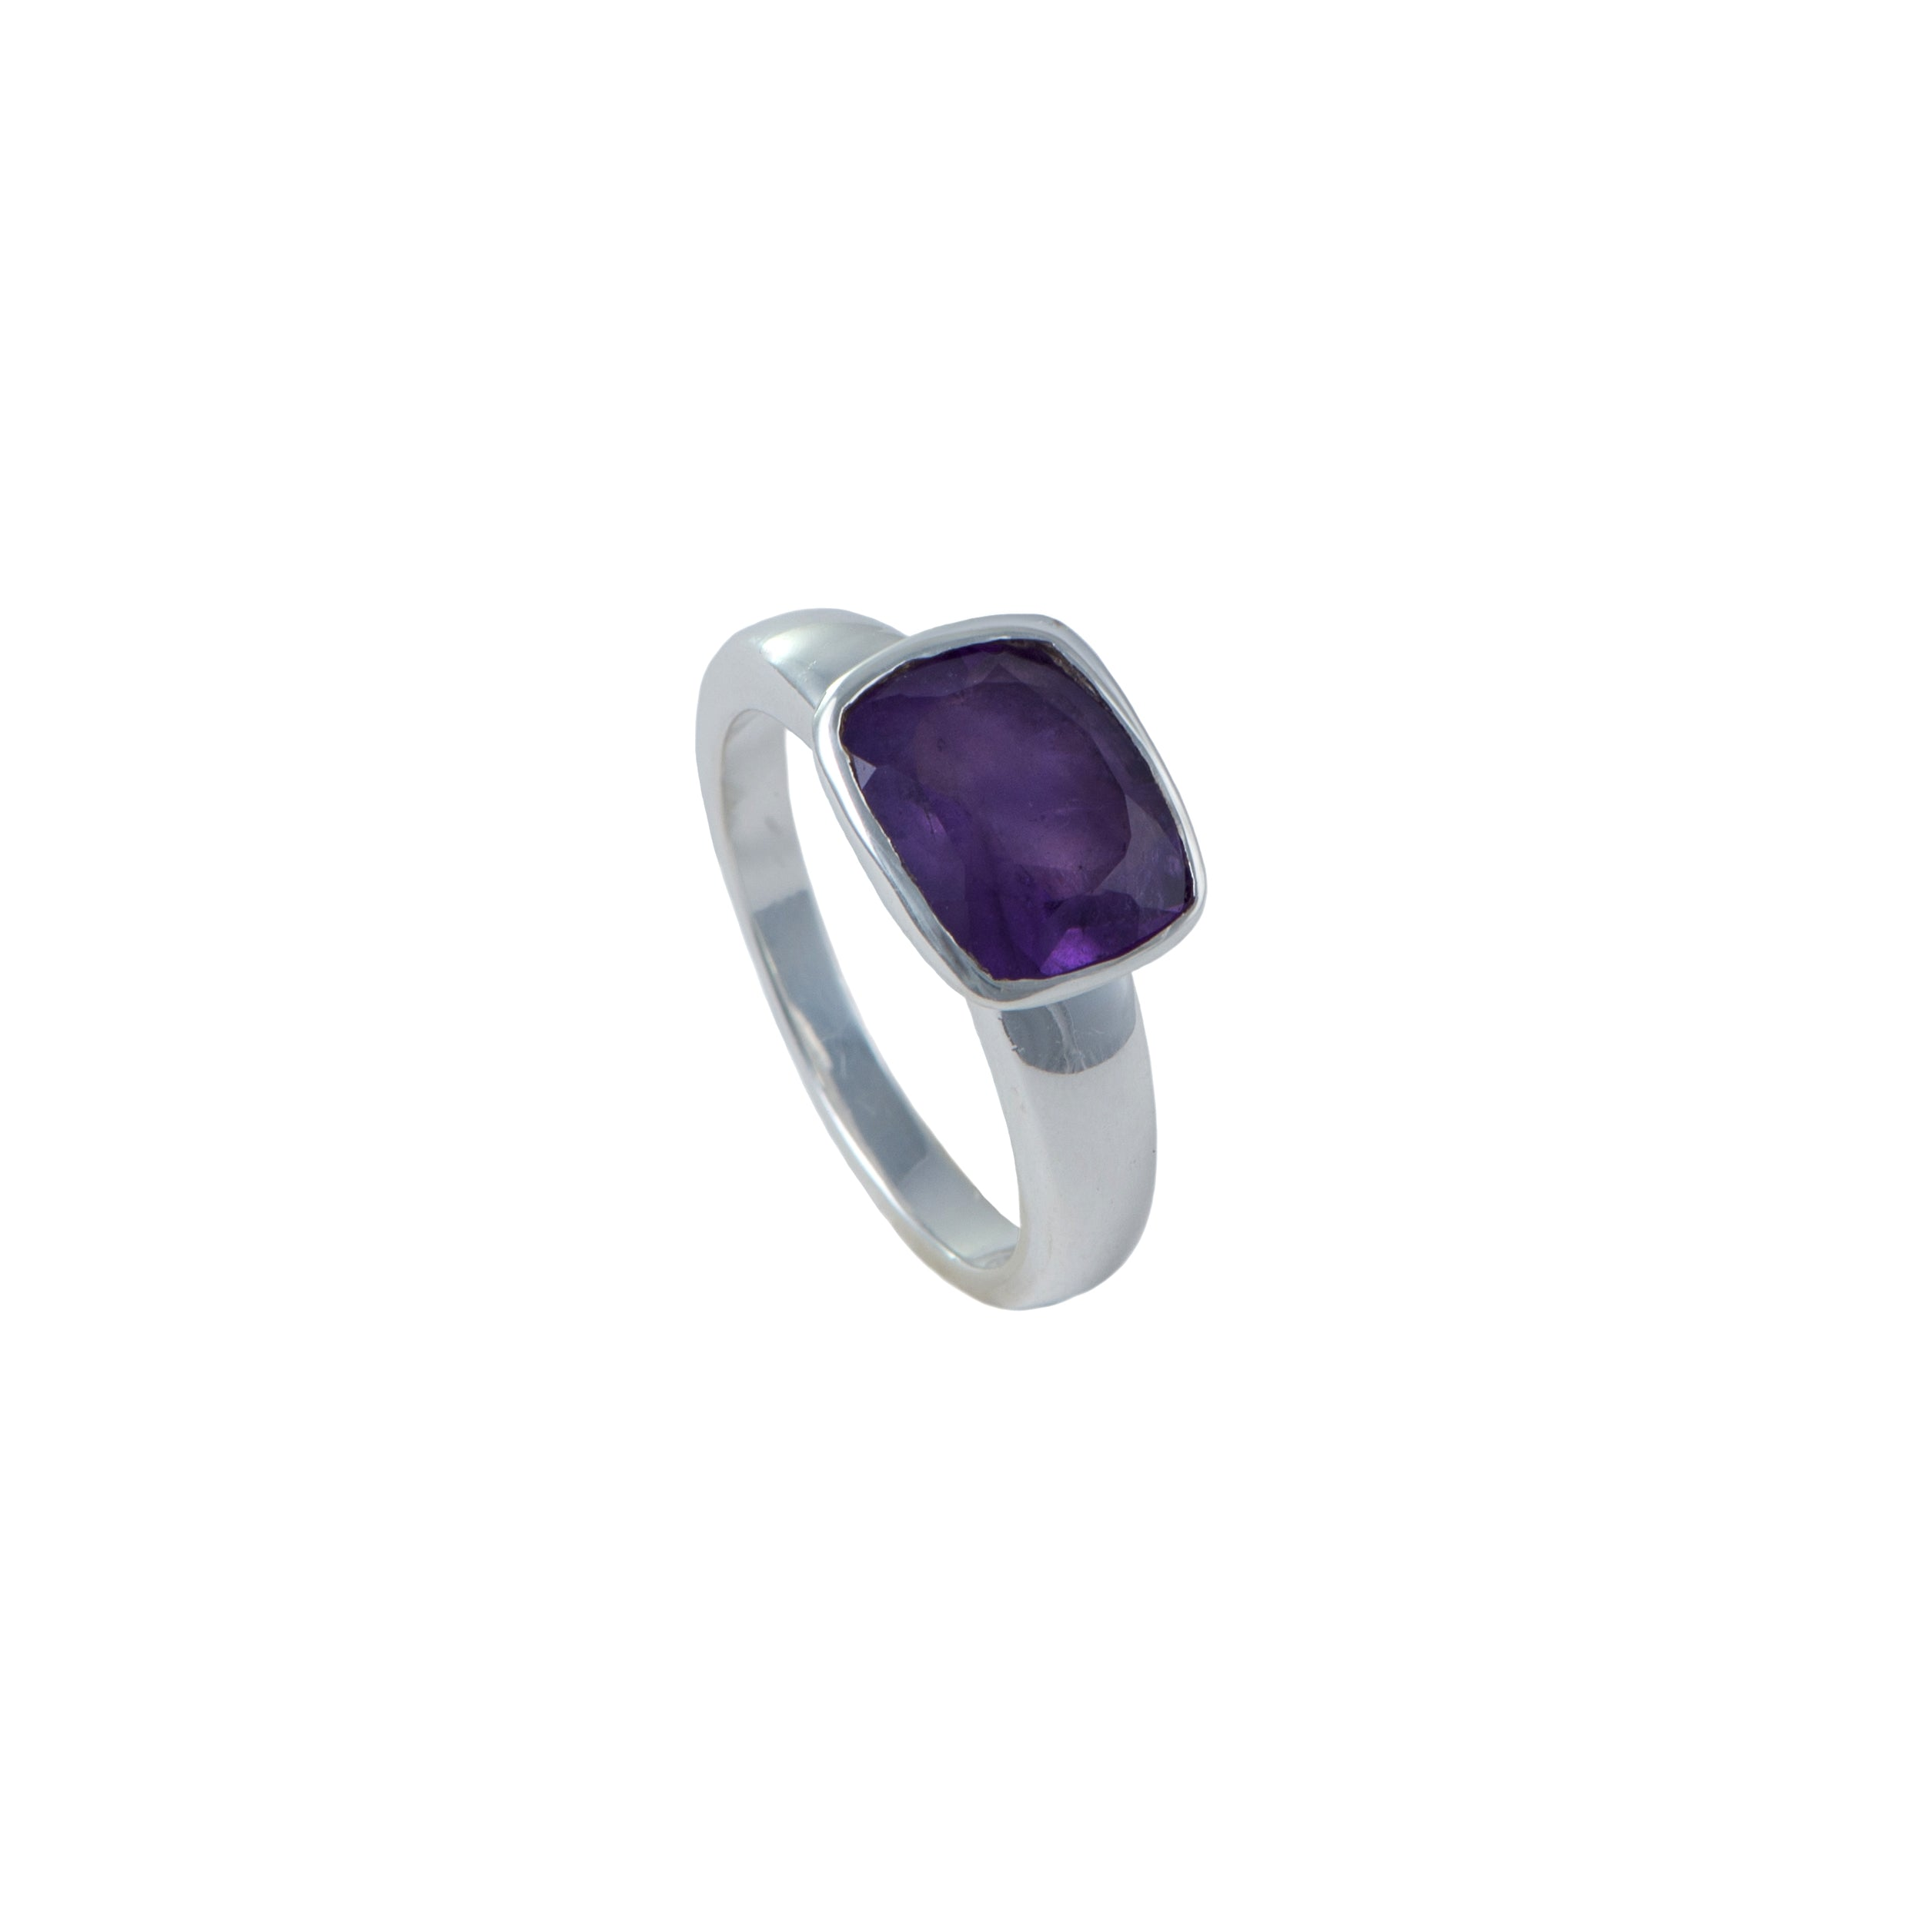 Faceted Rectangular Cut Natural Gemstone Sterling Silver Ring